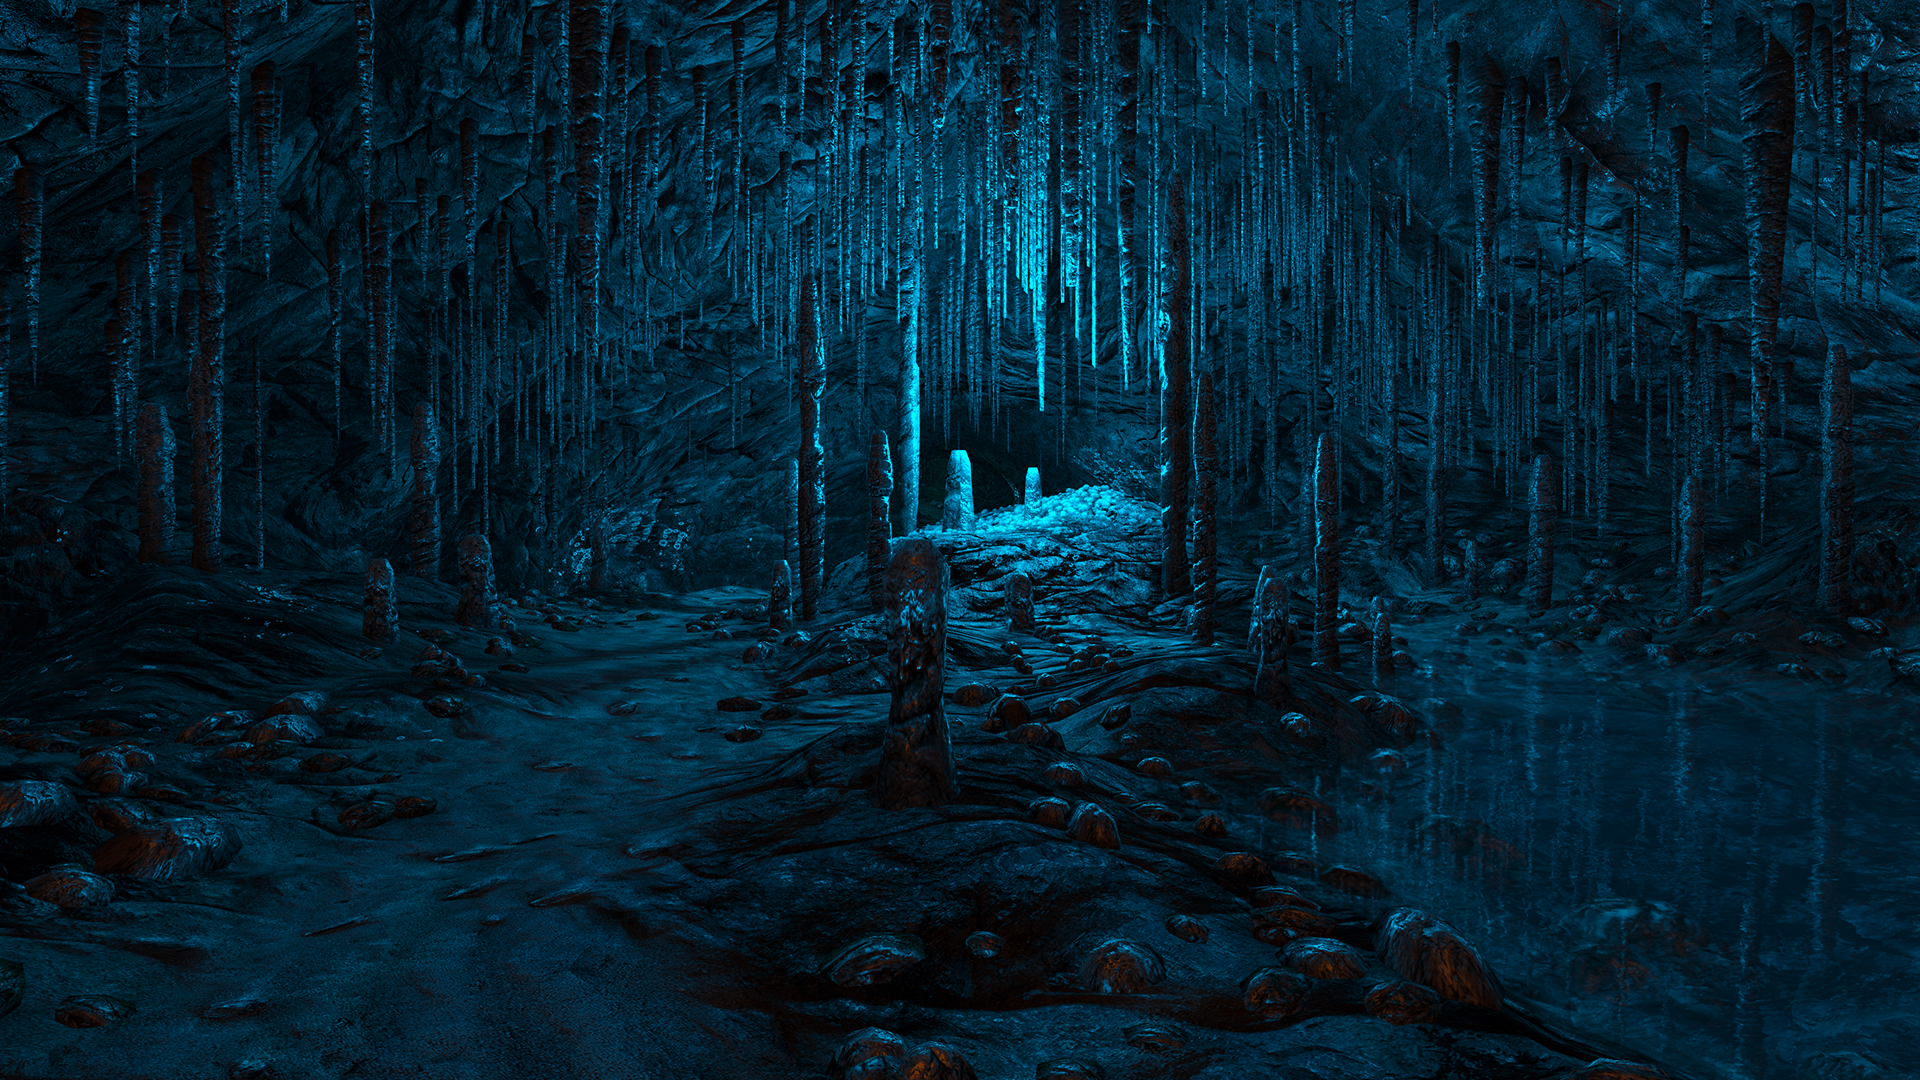 Forest Iphone Wallpaper Dear Esther Video Games Nature Landscapes Cavern Caves